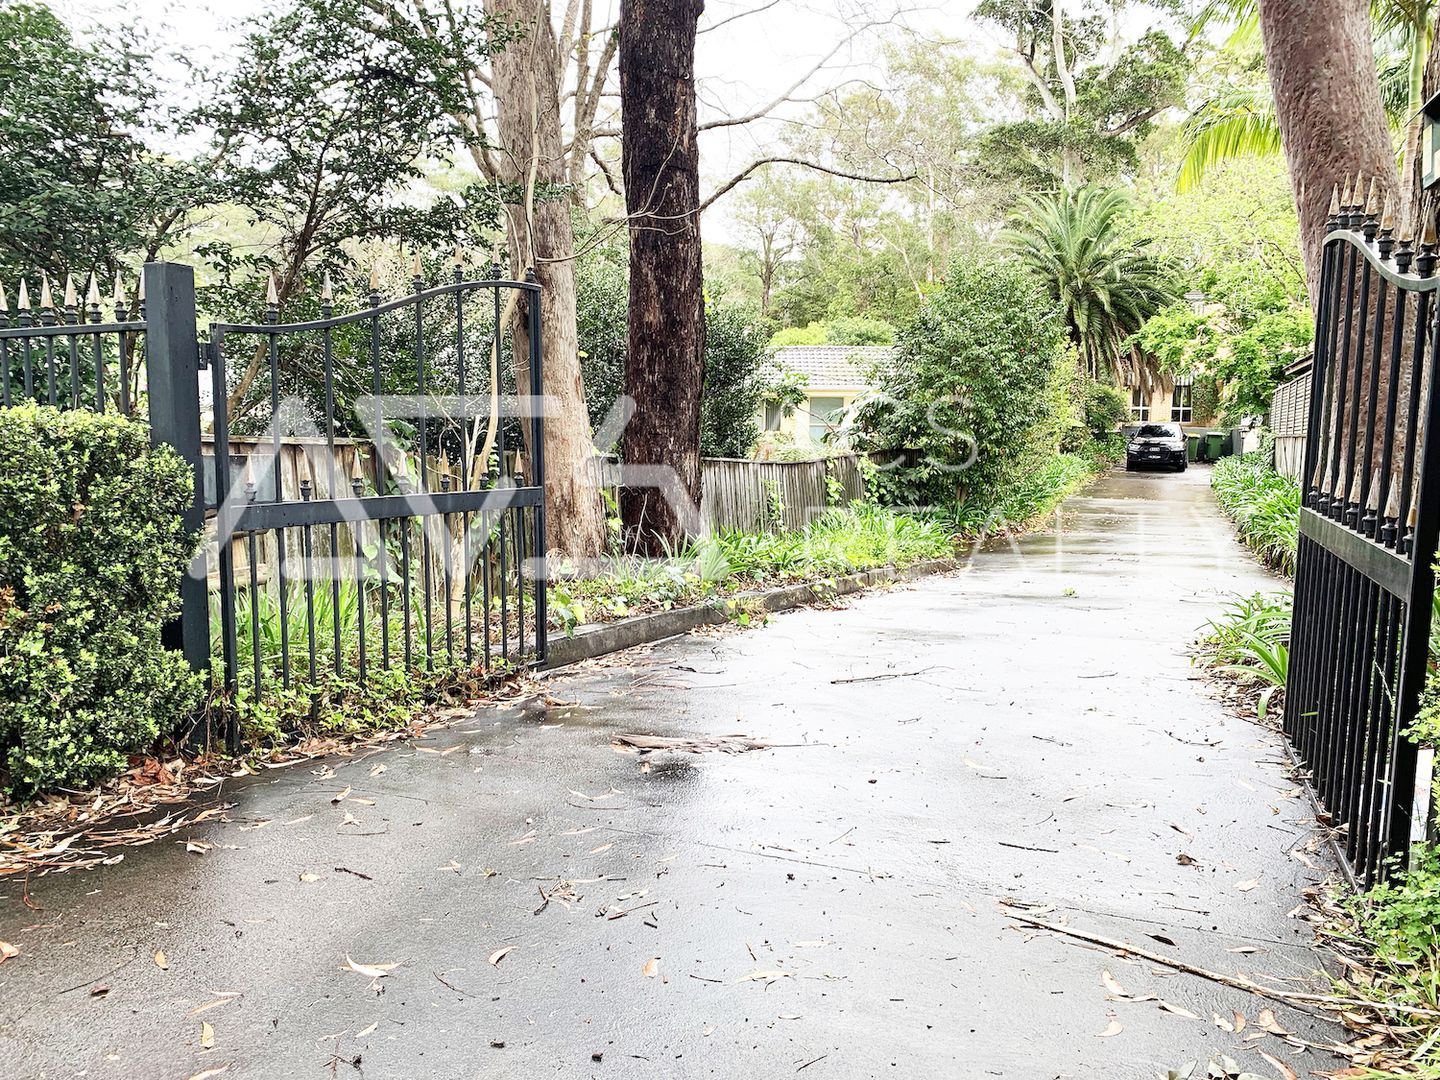 57 LUCINDA AVENUE, Wahroonga NSW 2076 - House For